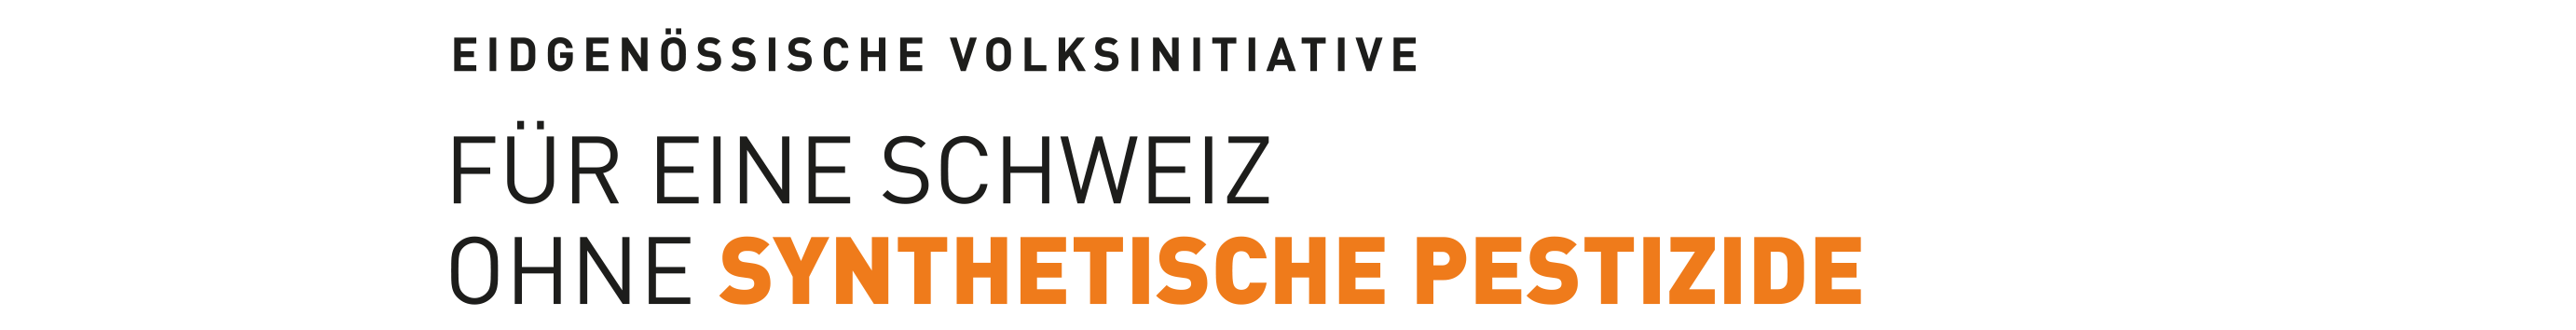 Pestizid Initiative